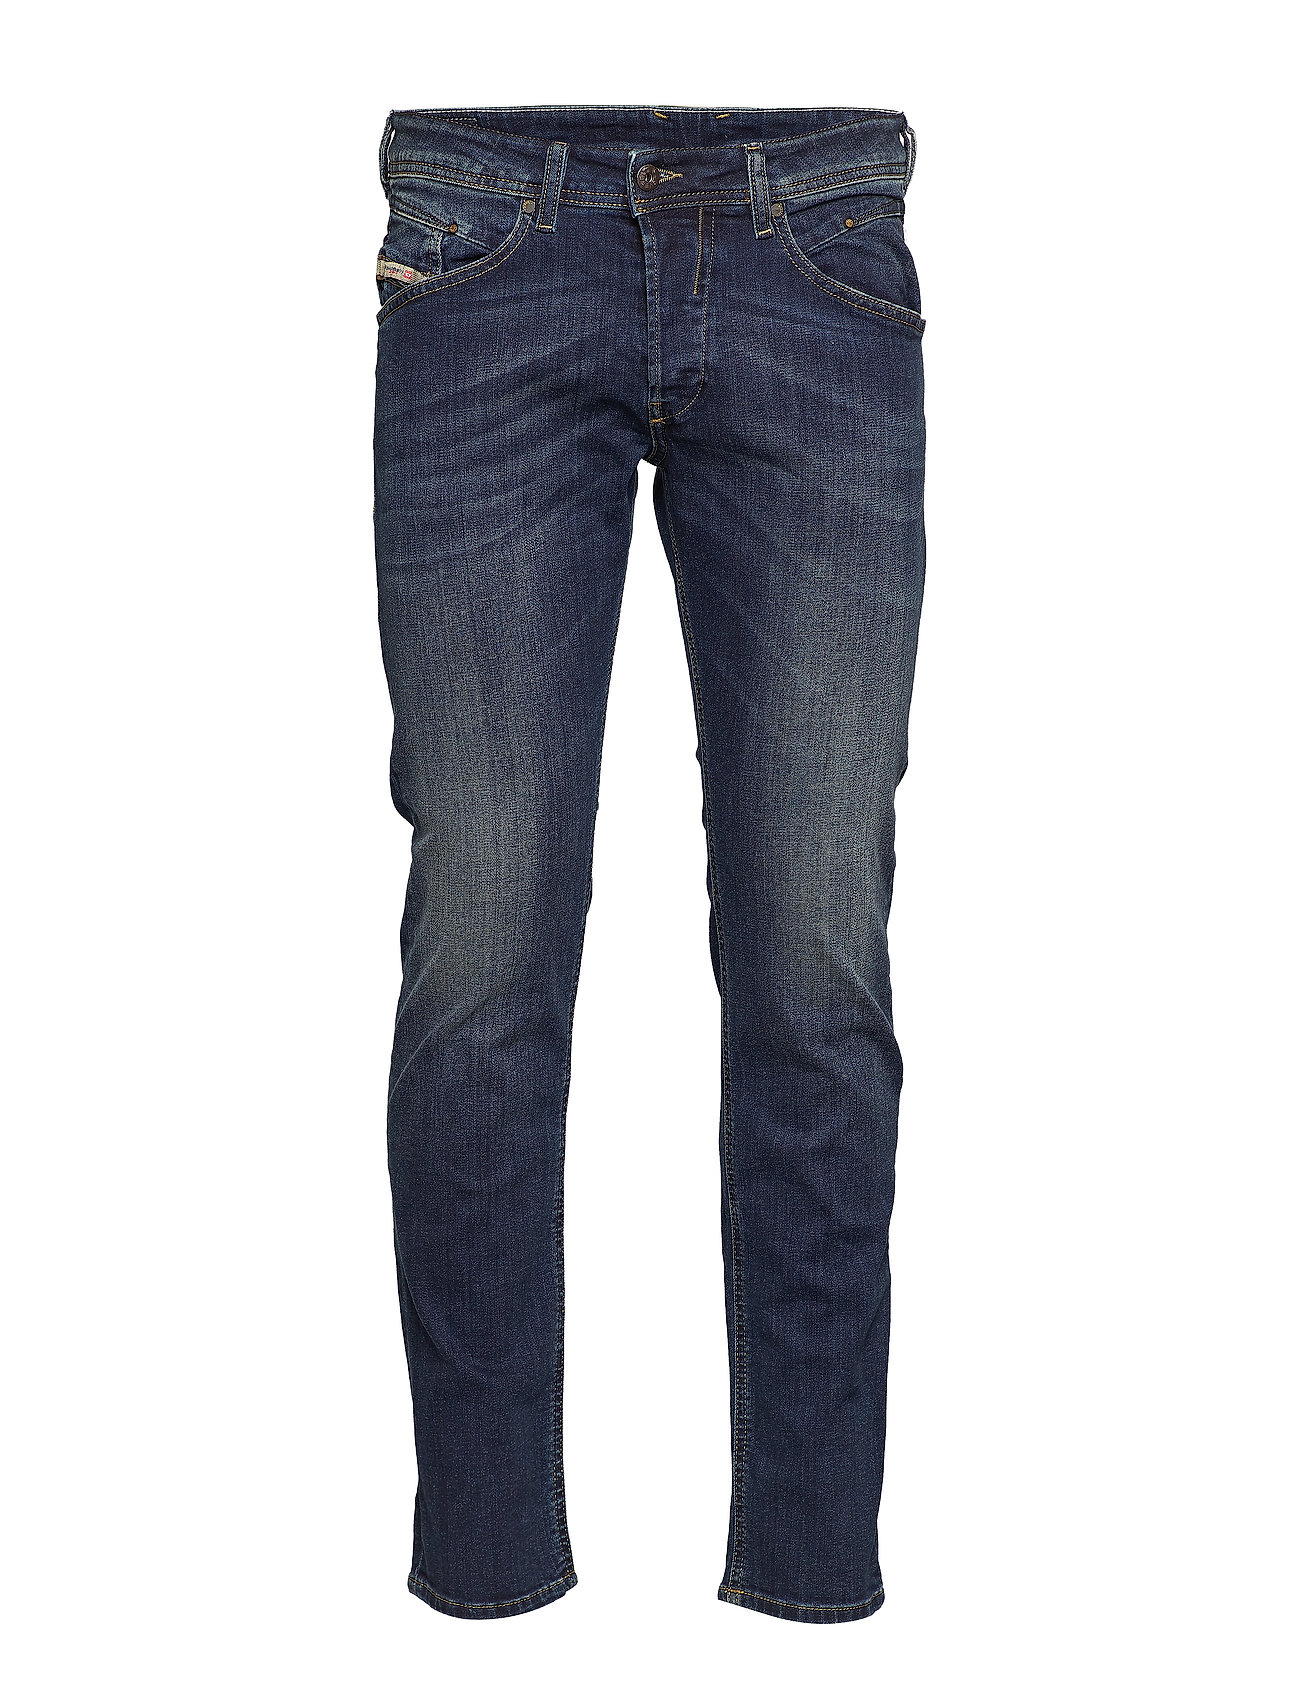 Diesel Men BELTHER - DENIM